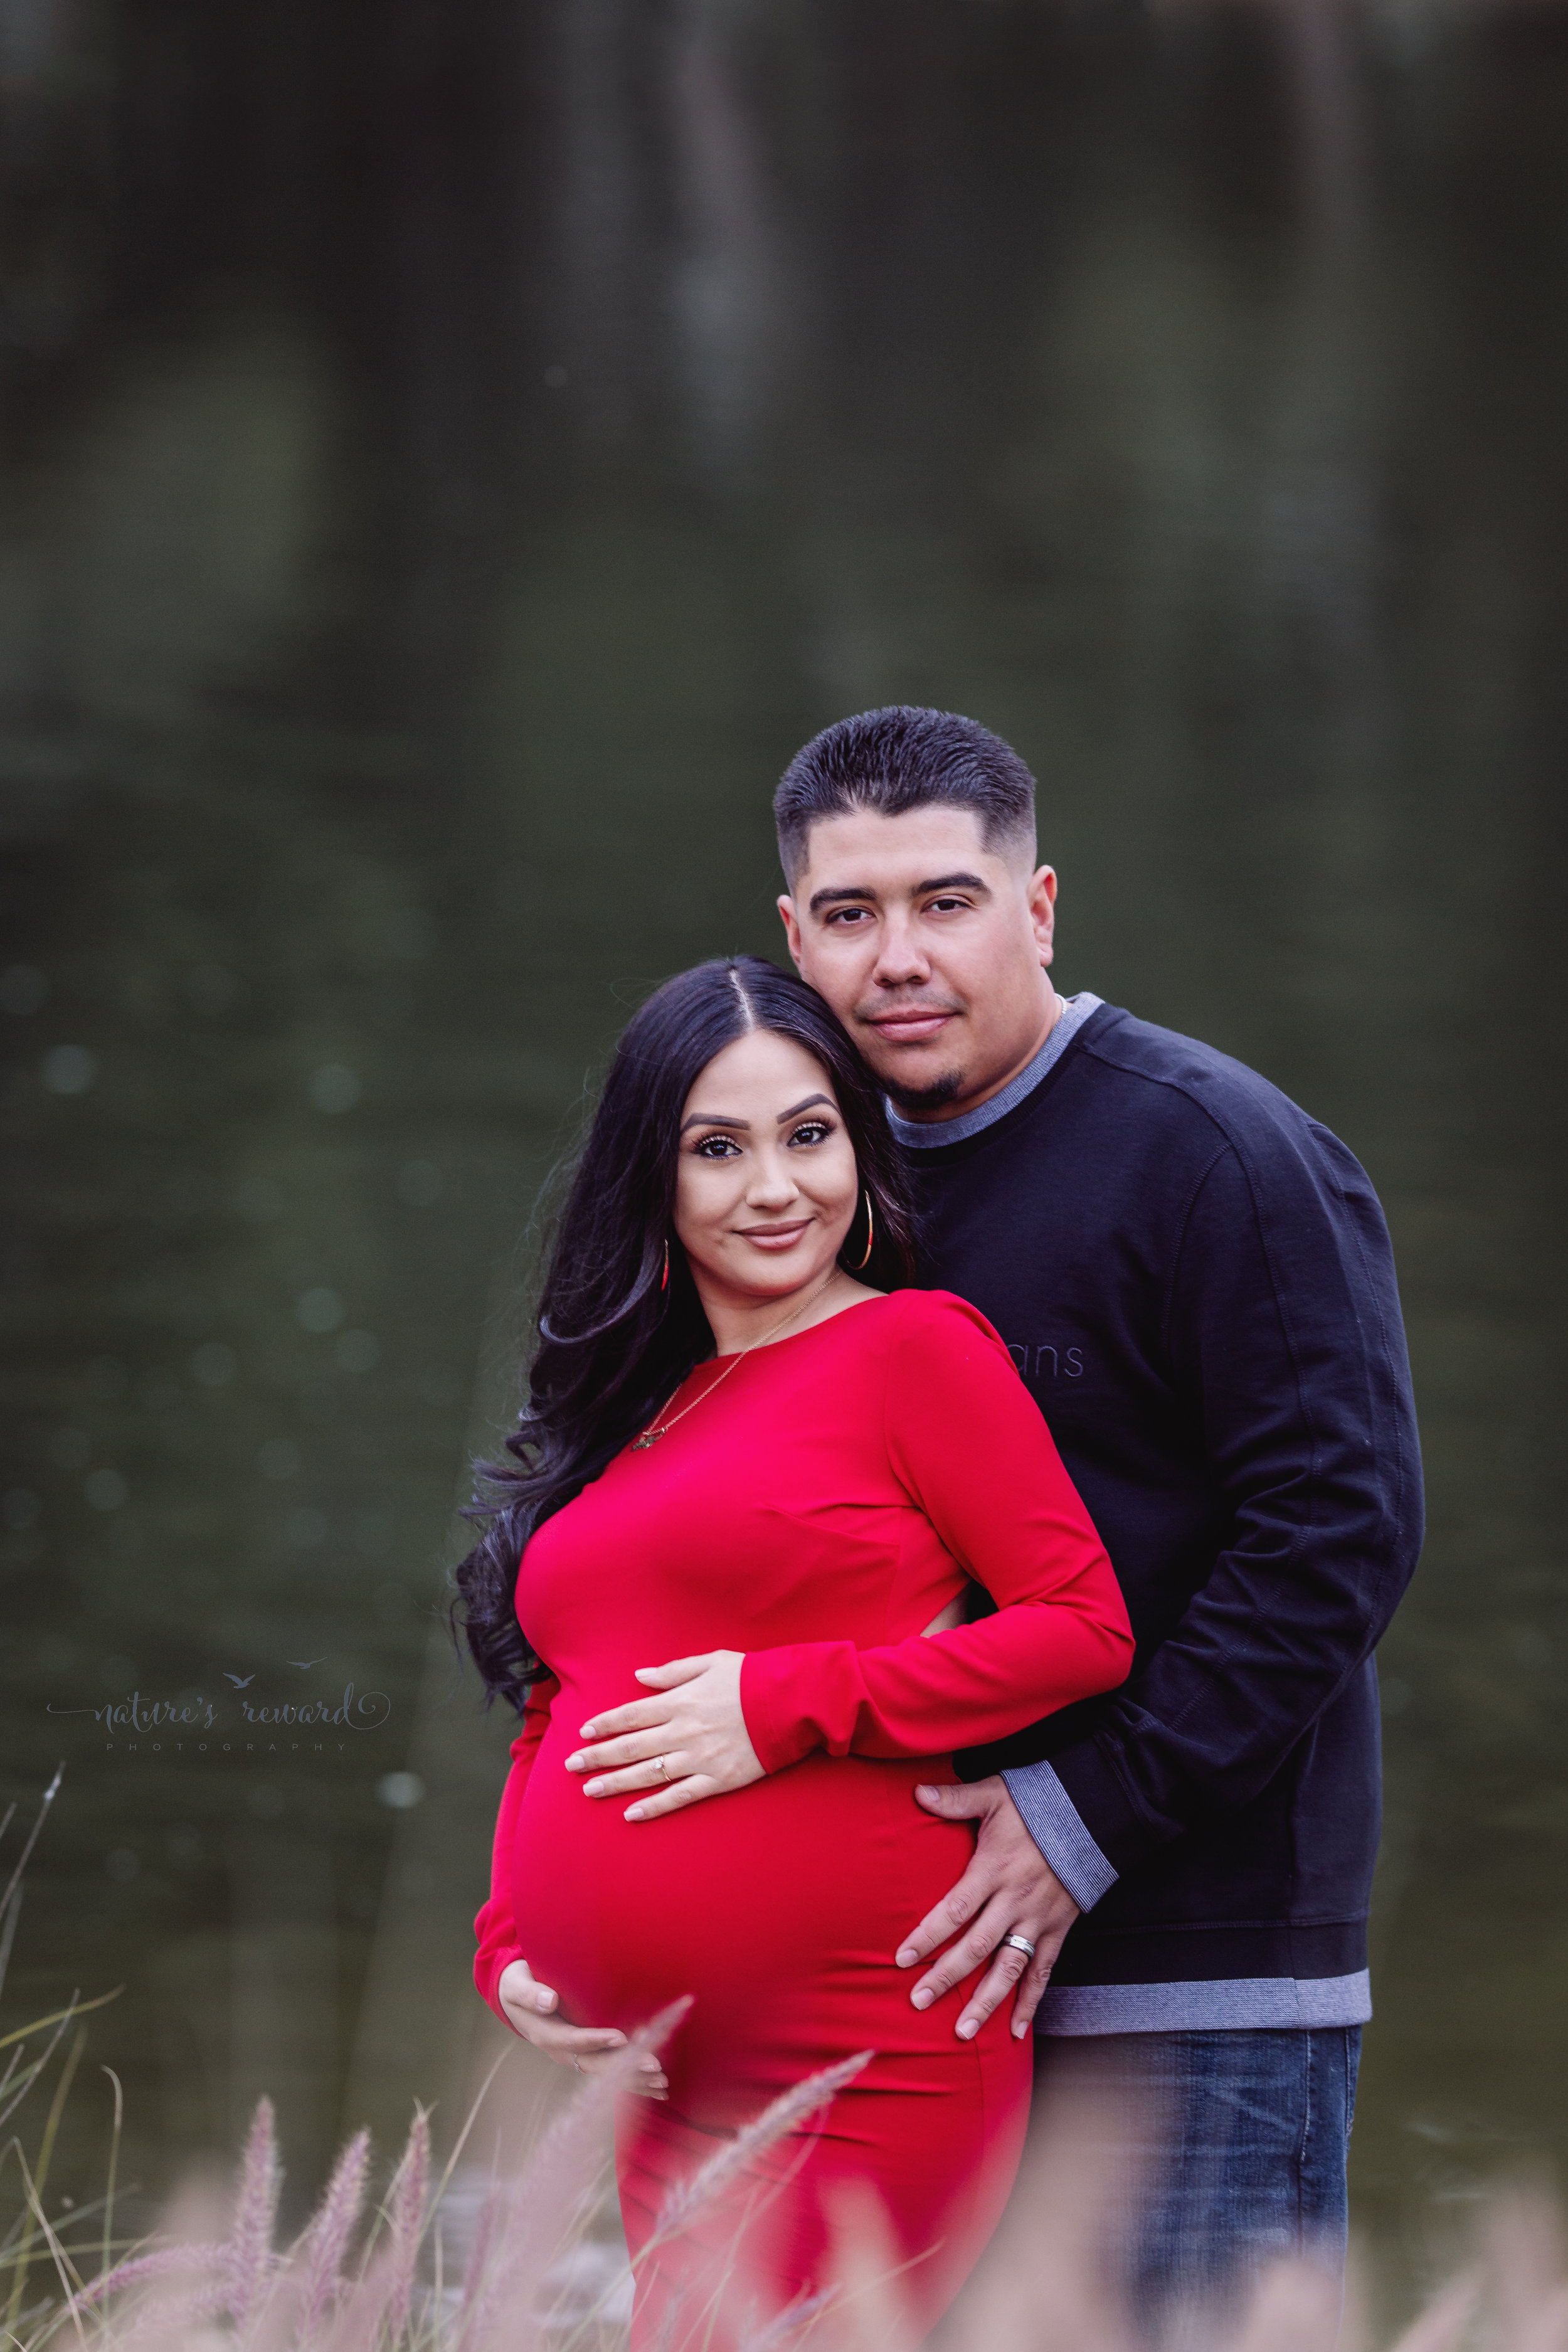 By the water maternity portrait of mom to be in a beautiful red maternity gown and her husband in dark wash jeans and long sleeve shirt in this portrait by San Bernardino Based Photographer Nature's Reward Photography.